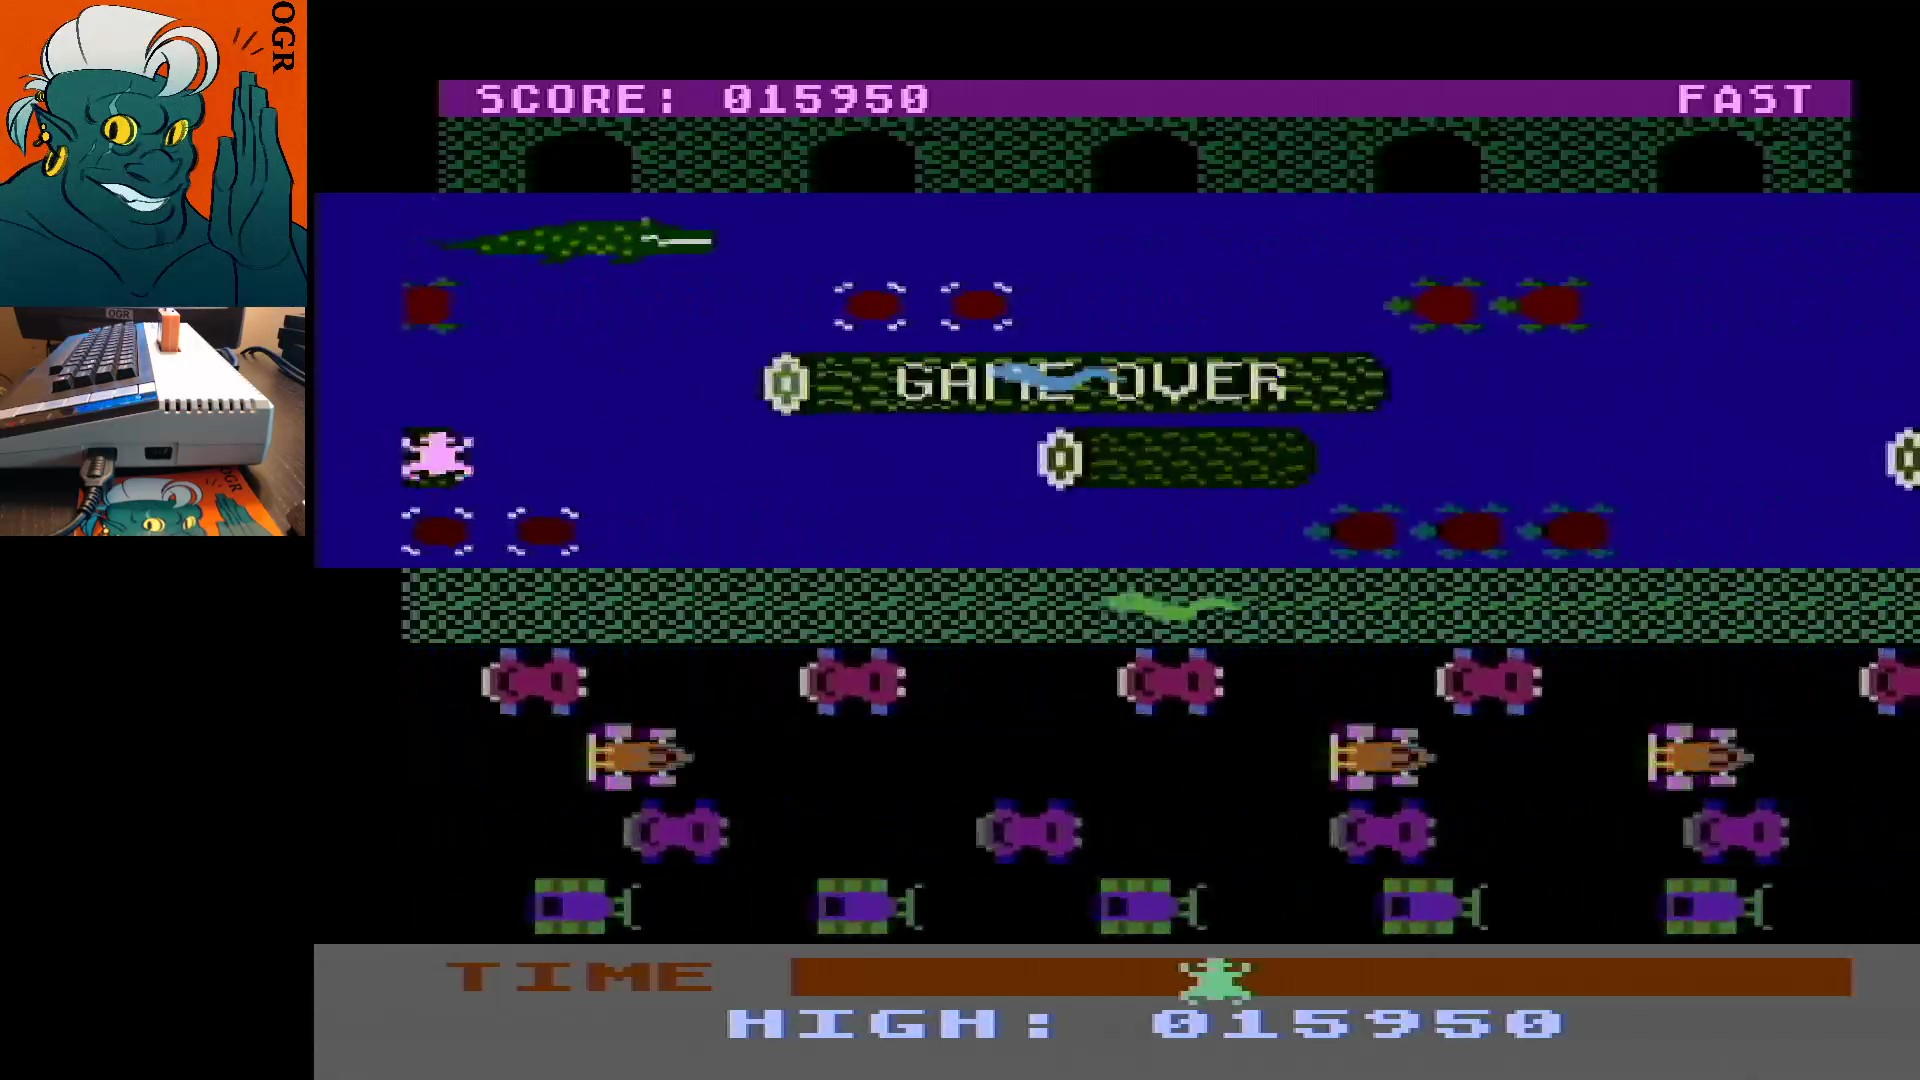 AwesomeOgre: Frogger: Fast [Sierra Online/John Harris] (Atari 400/800/XL/XE) 15,950 points on 2020-01-16 11:15:01